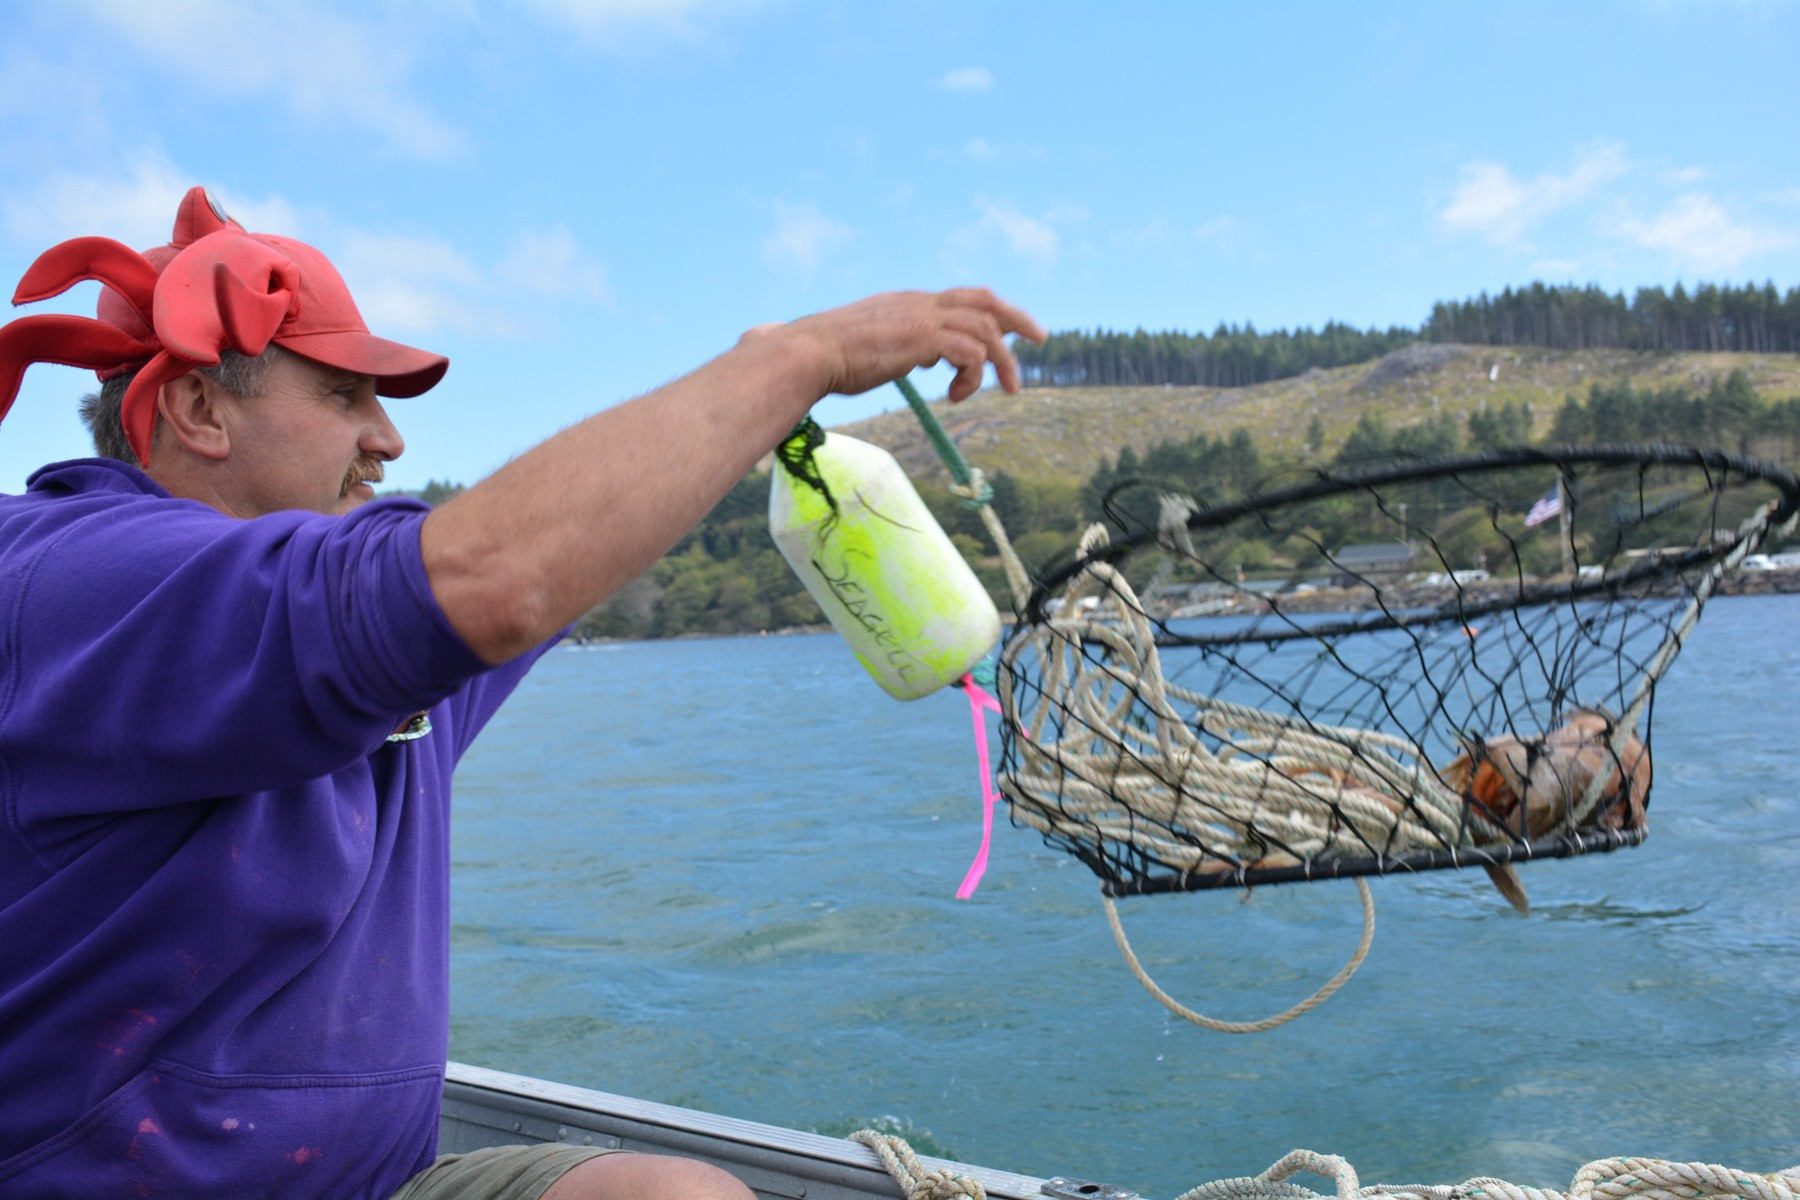 kelly_tossing_a_crab_basket - 1